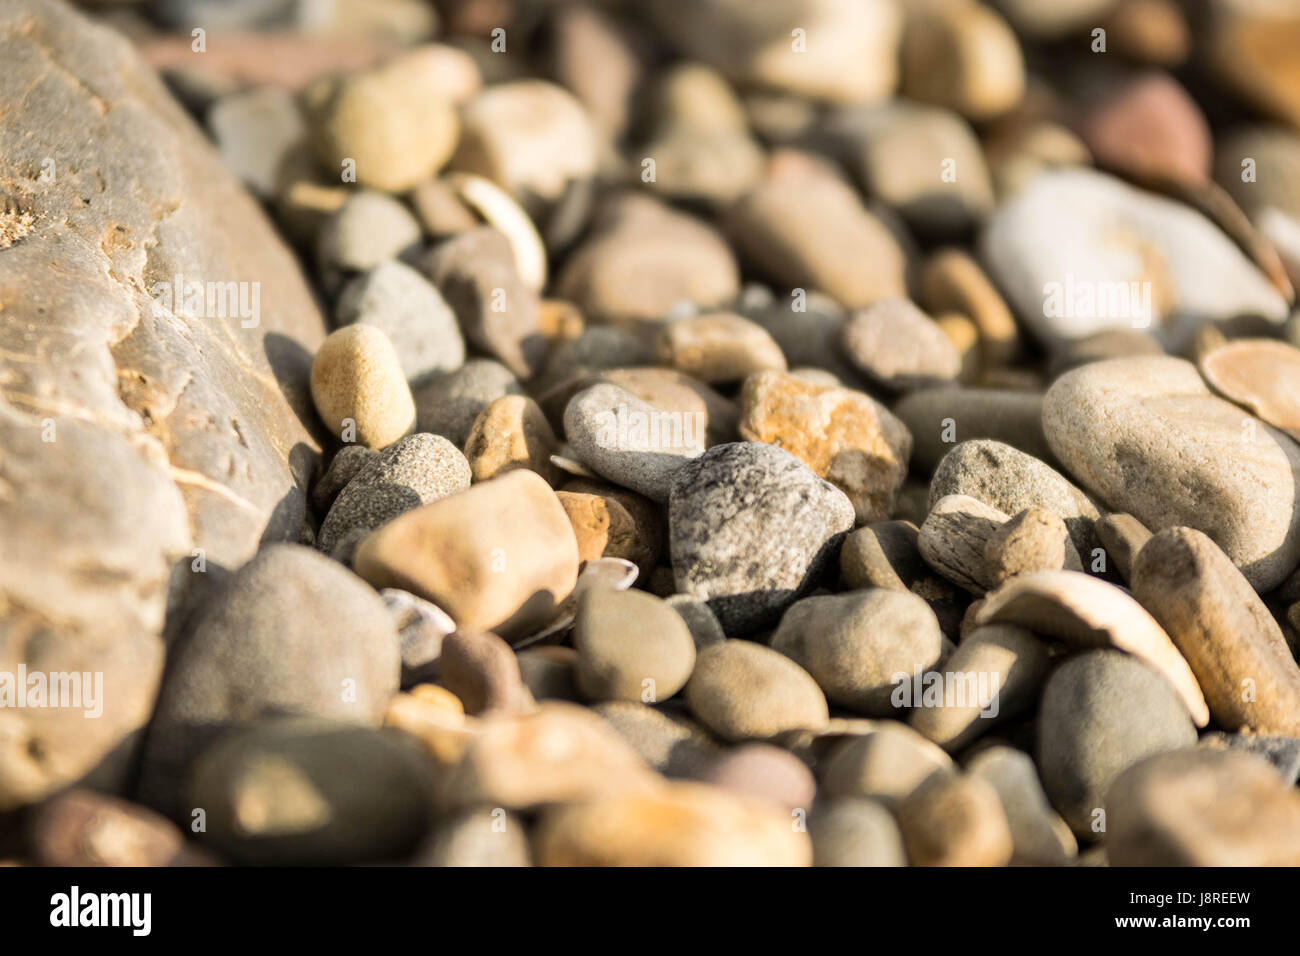 large group of pebblees - Stock Image